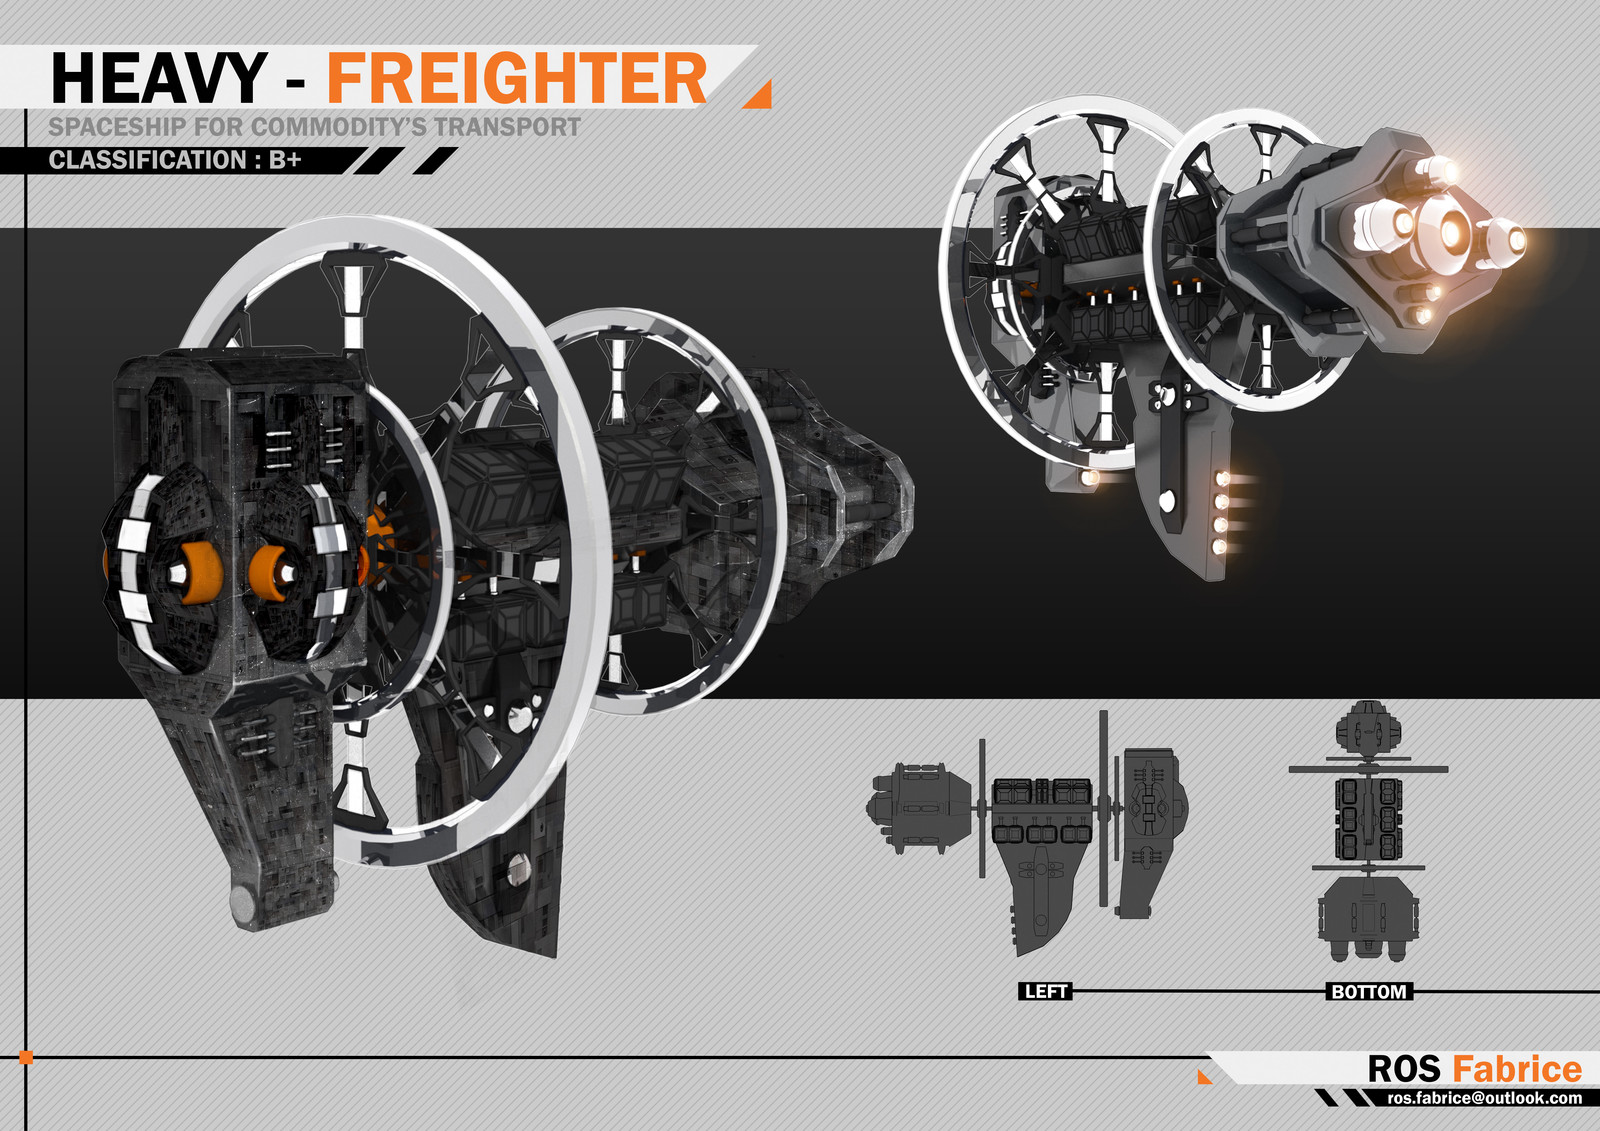 The Heavy - Freighter